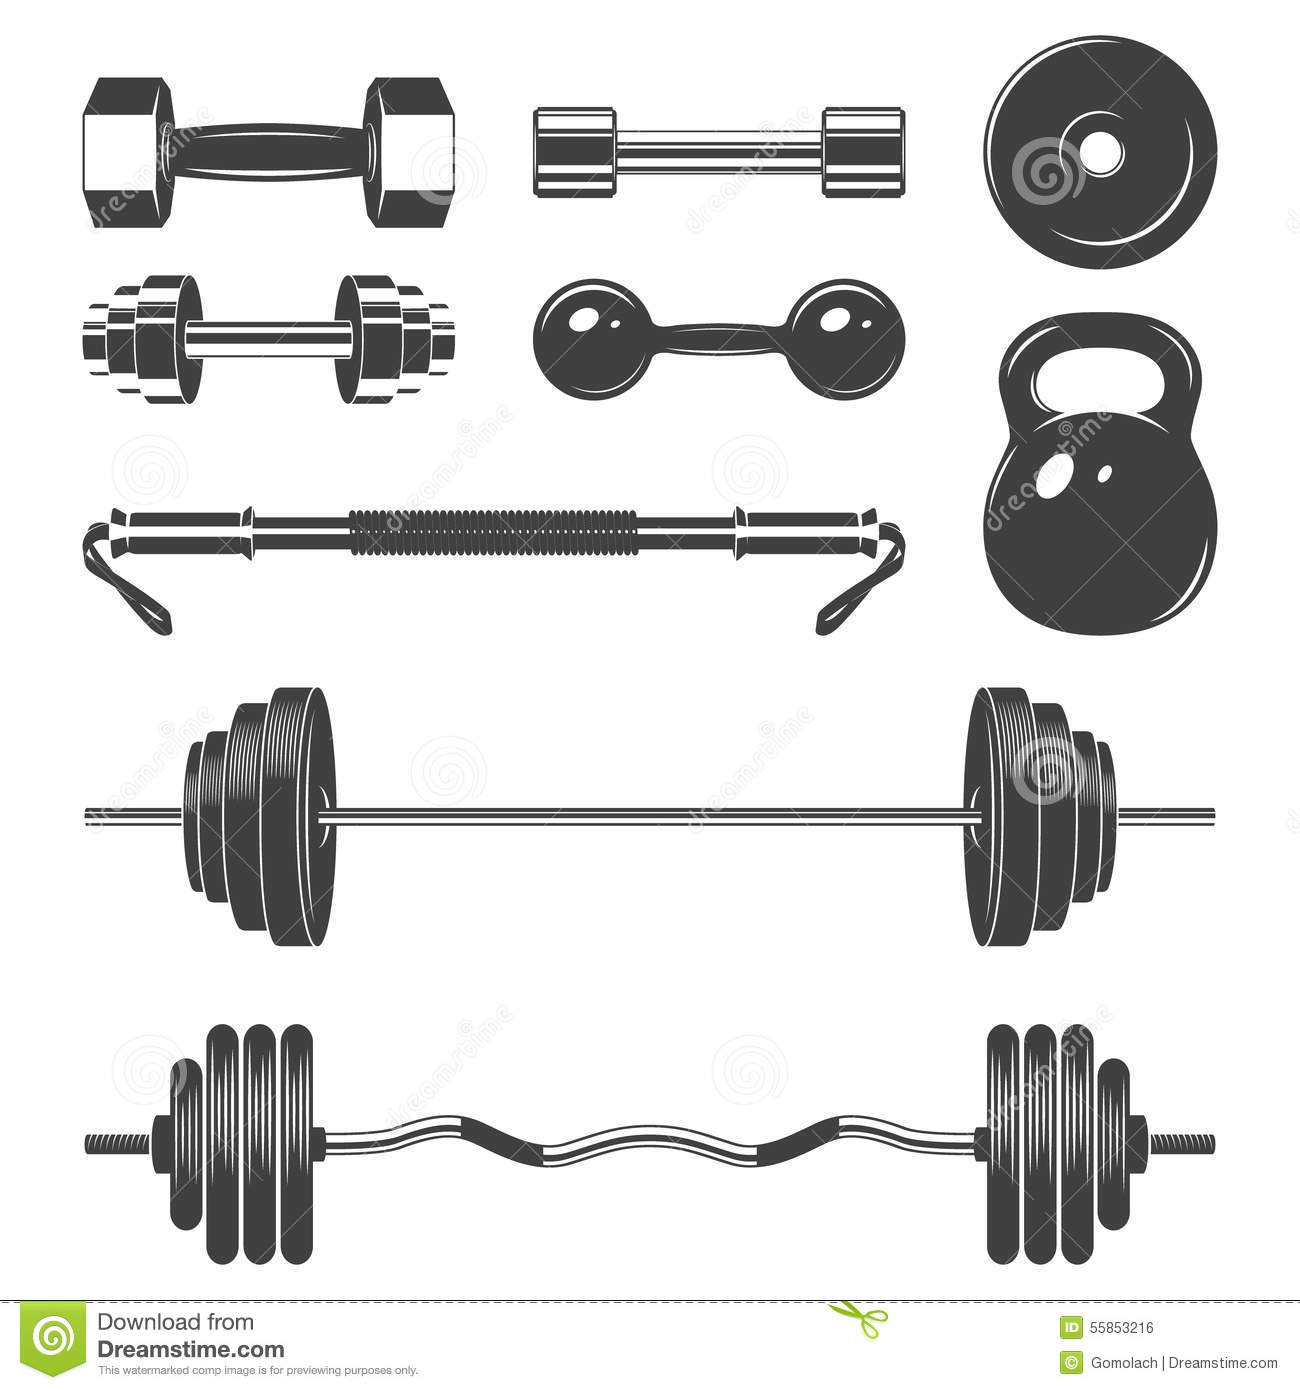 Free Weights Your Design Lyrics: Set Of Sign Weights For Fitness Or Gym Design Stock Vector